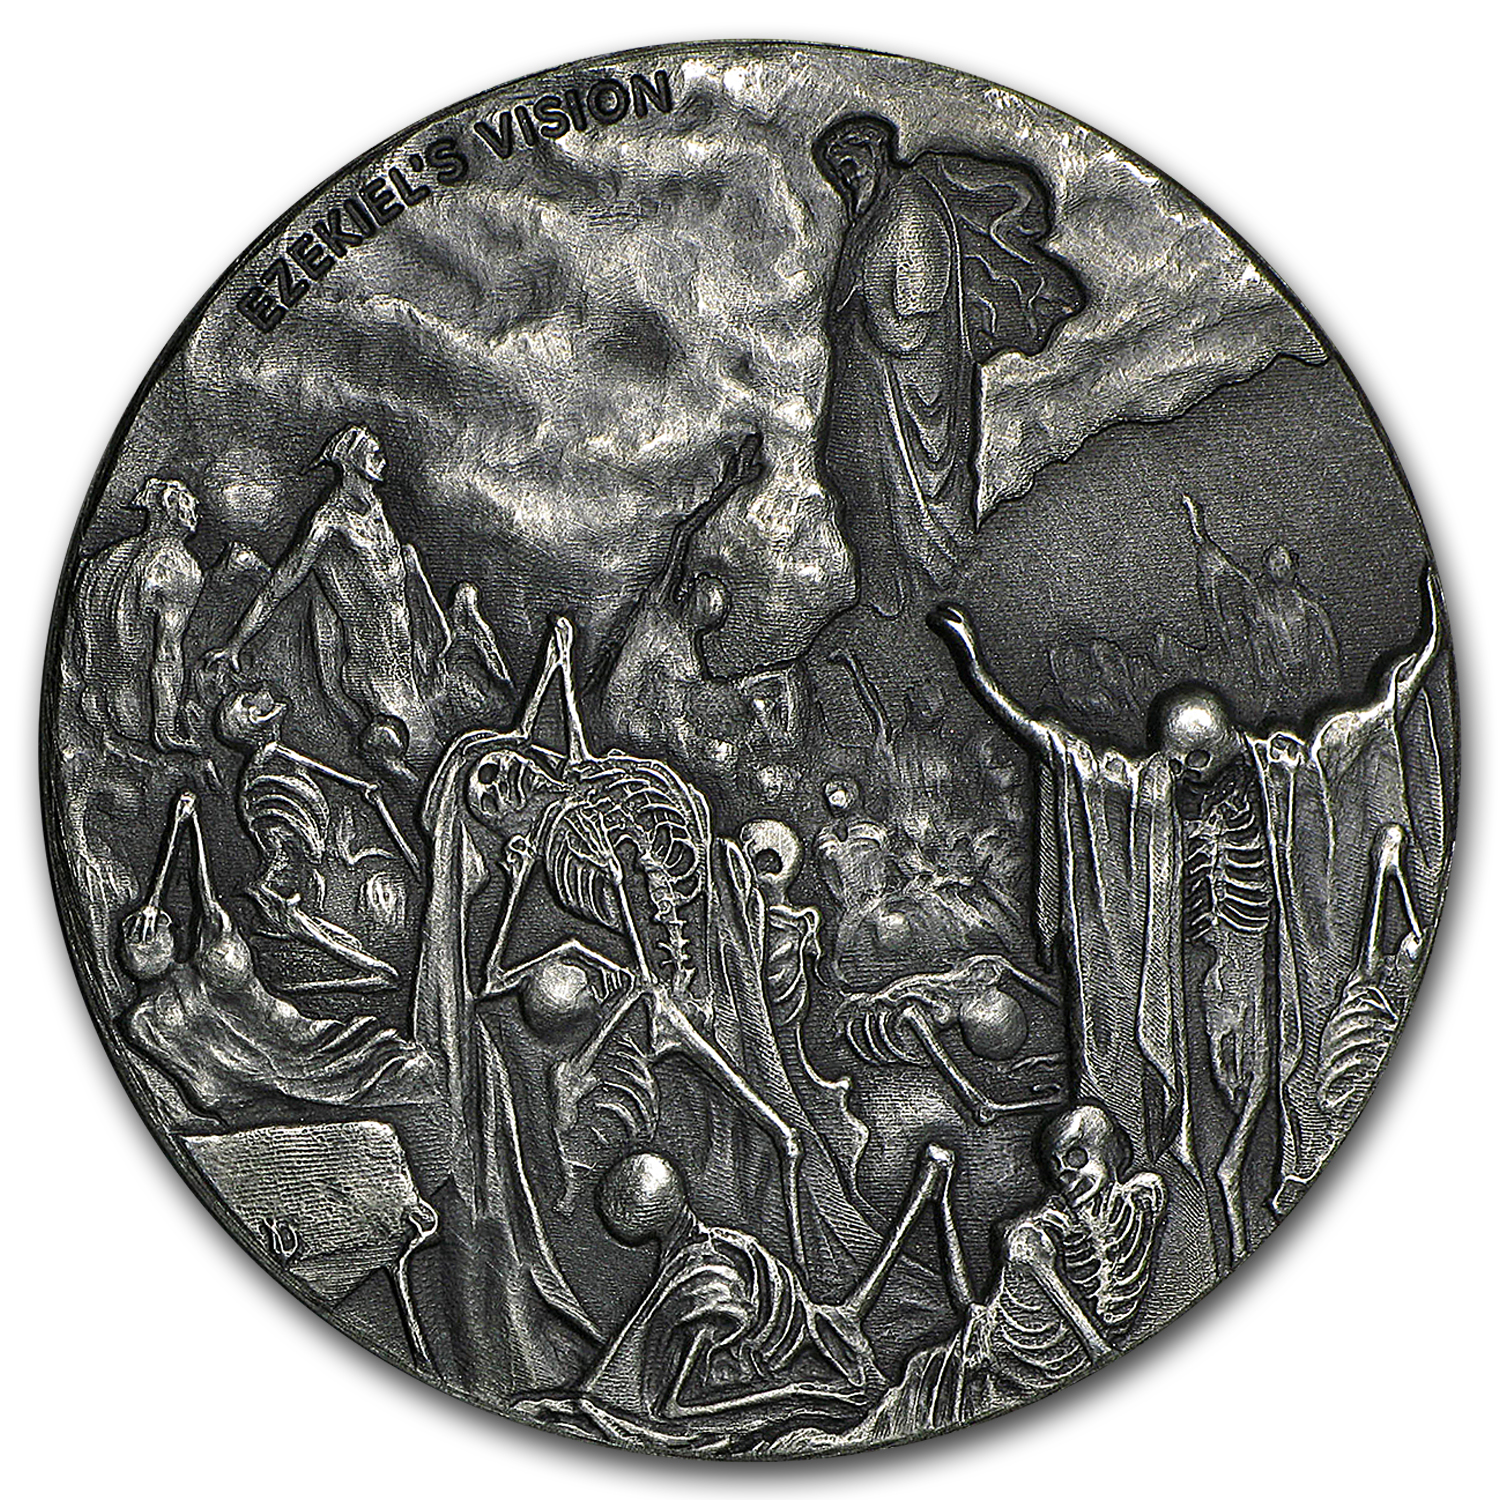 2016 2 oz Silver Coin - Biblical Series (Valley of Dry Bones)